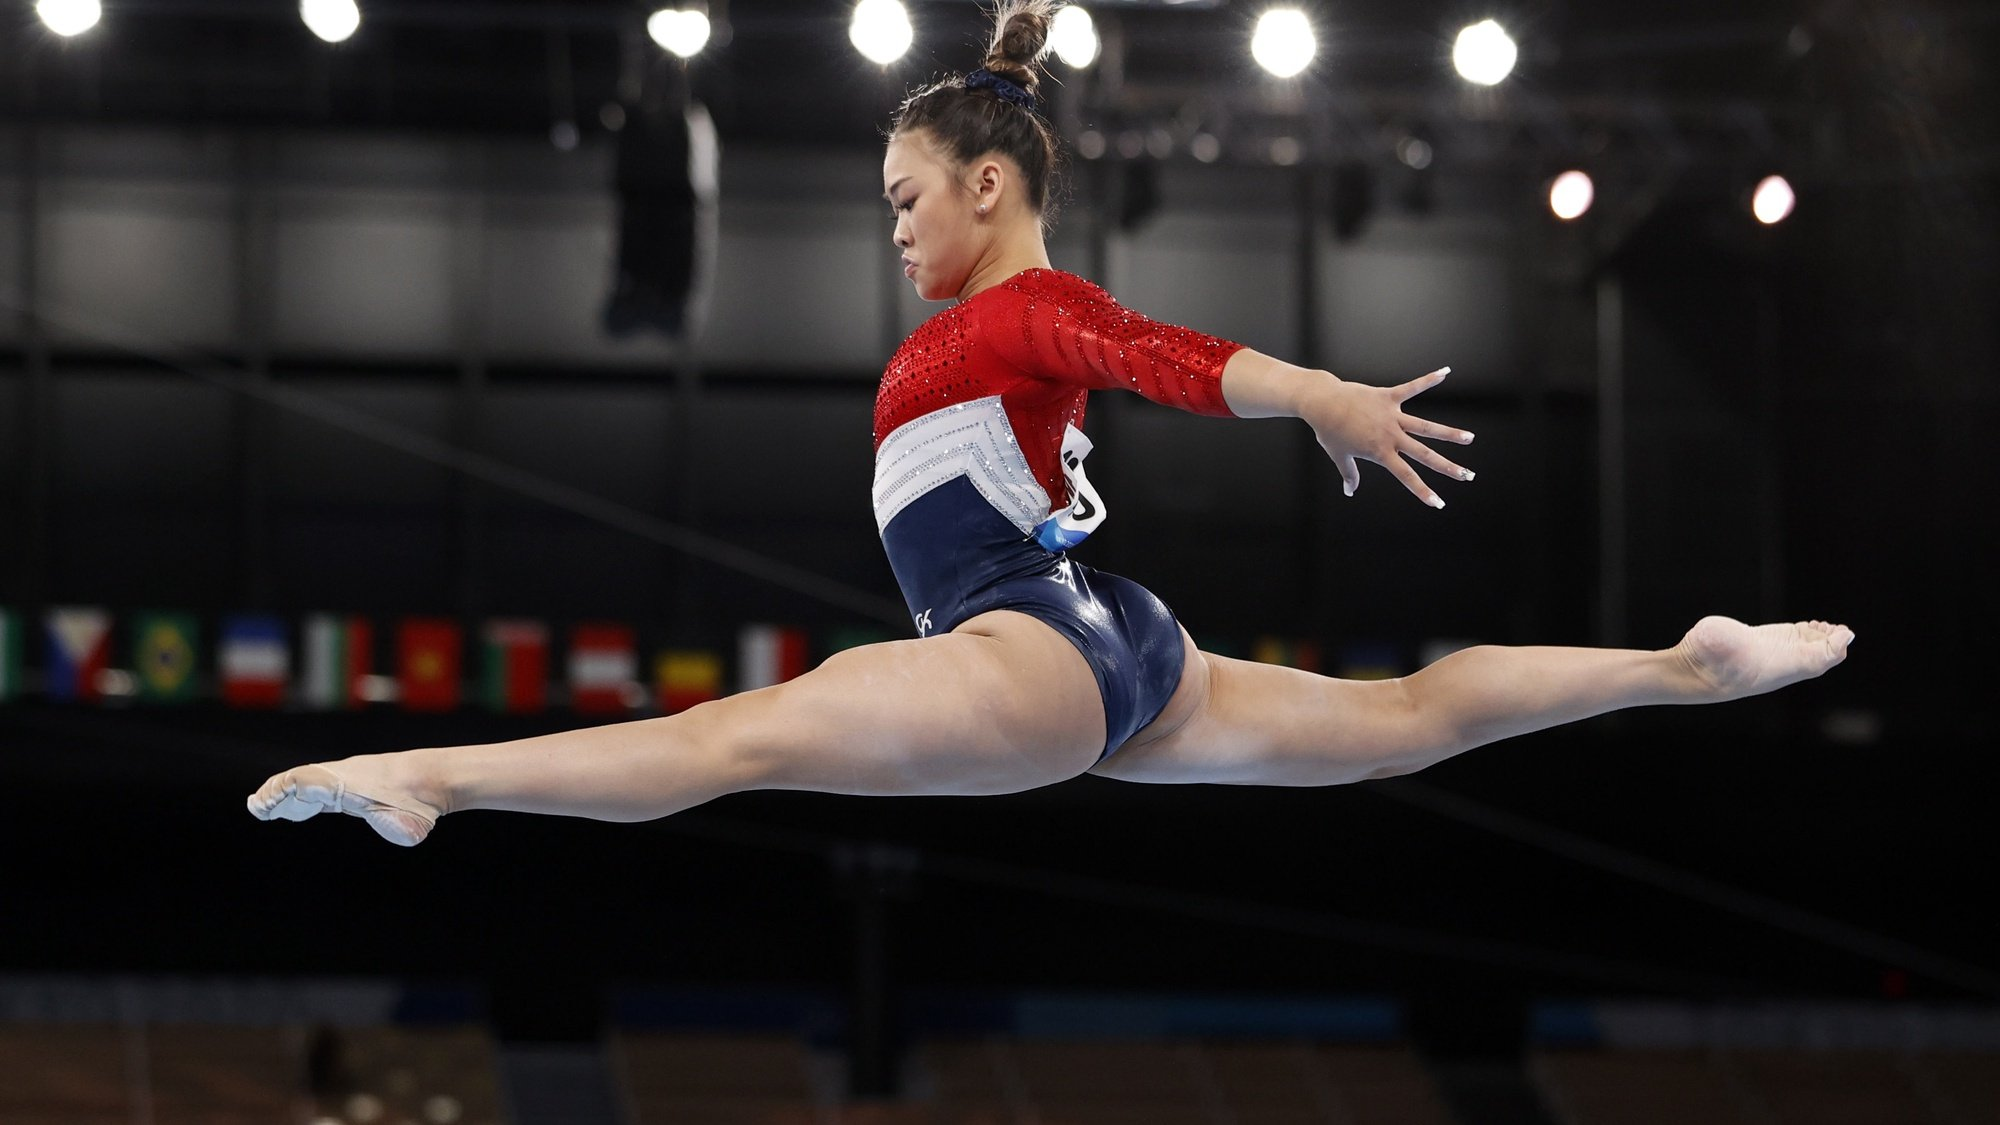 epaselect epa09370482 Sunisa Lee of the USA performs on the Balance Beam during the Women's Team final during the Artistic Gymnastics events of the Tokyo 2020 Olympic Games at the Ariake Gymnastics Centre in Tokyo, Japan, 27 July 2021.  EPA/HOW HWEE YOUNG